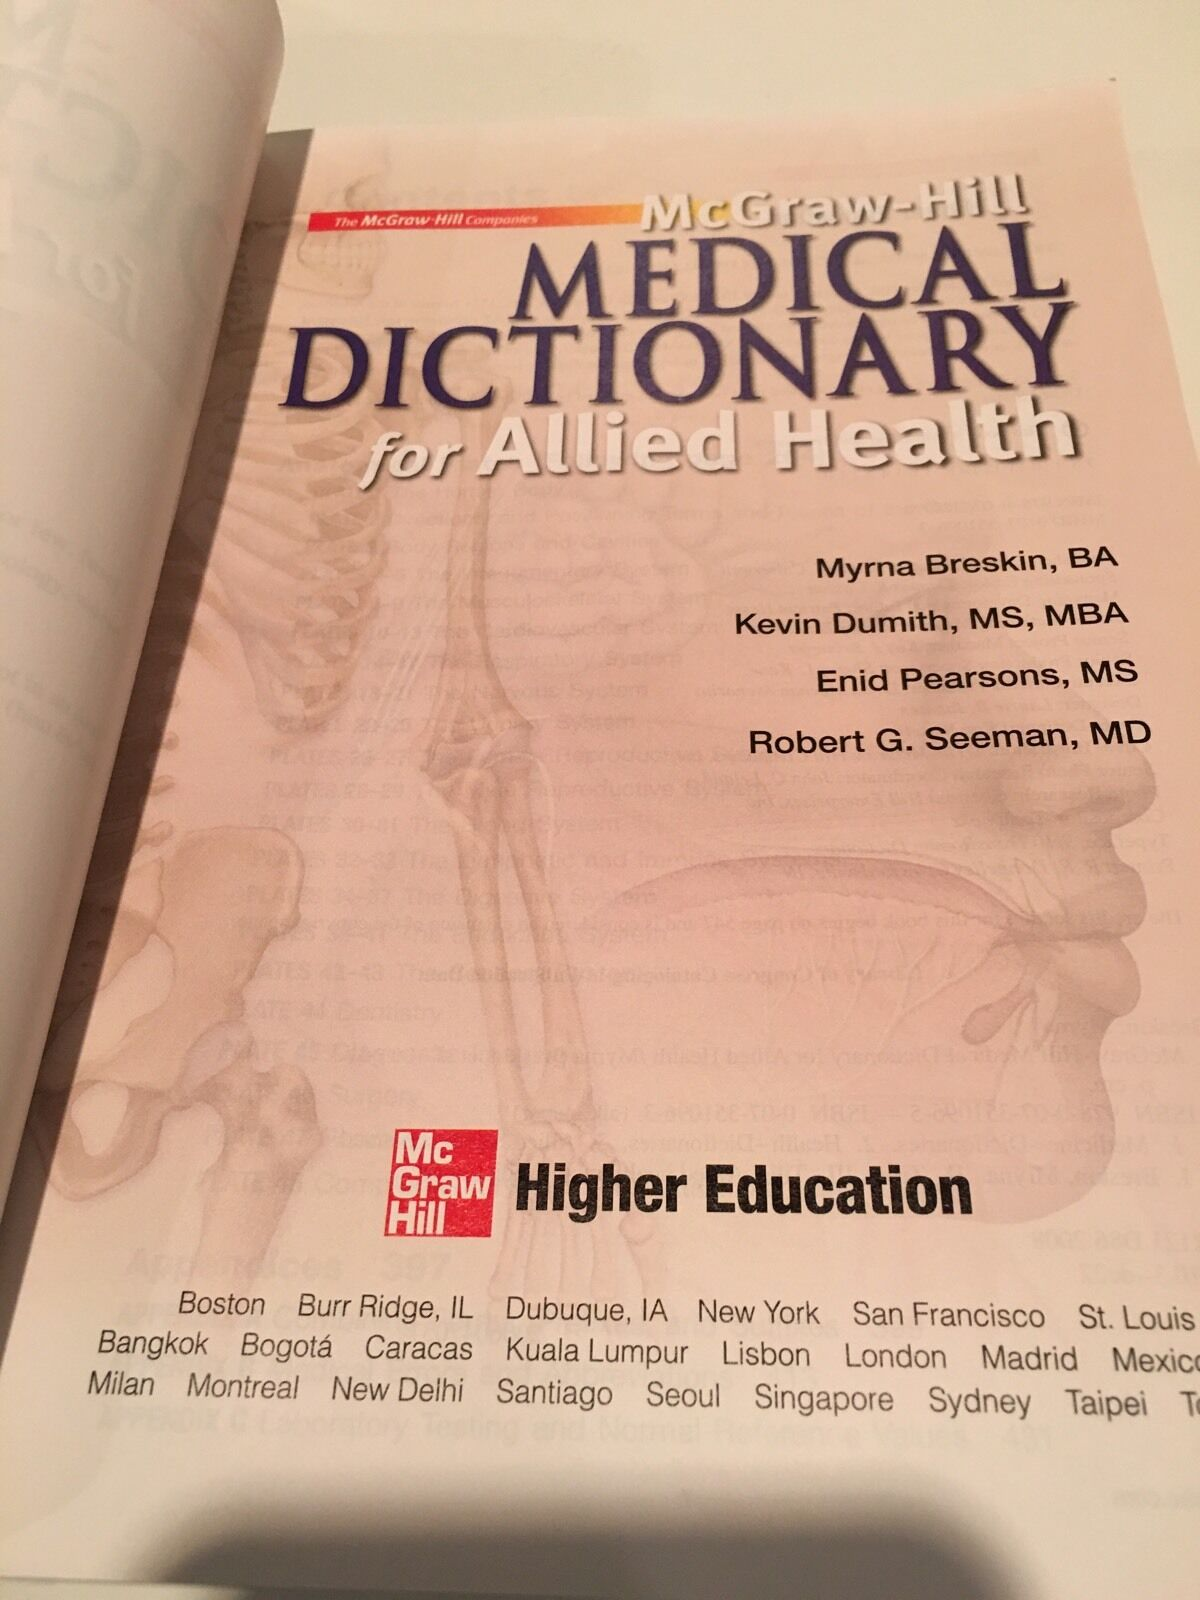 Mcgraw-hill Medical Dictionary for Allied Health | eBay